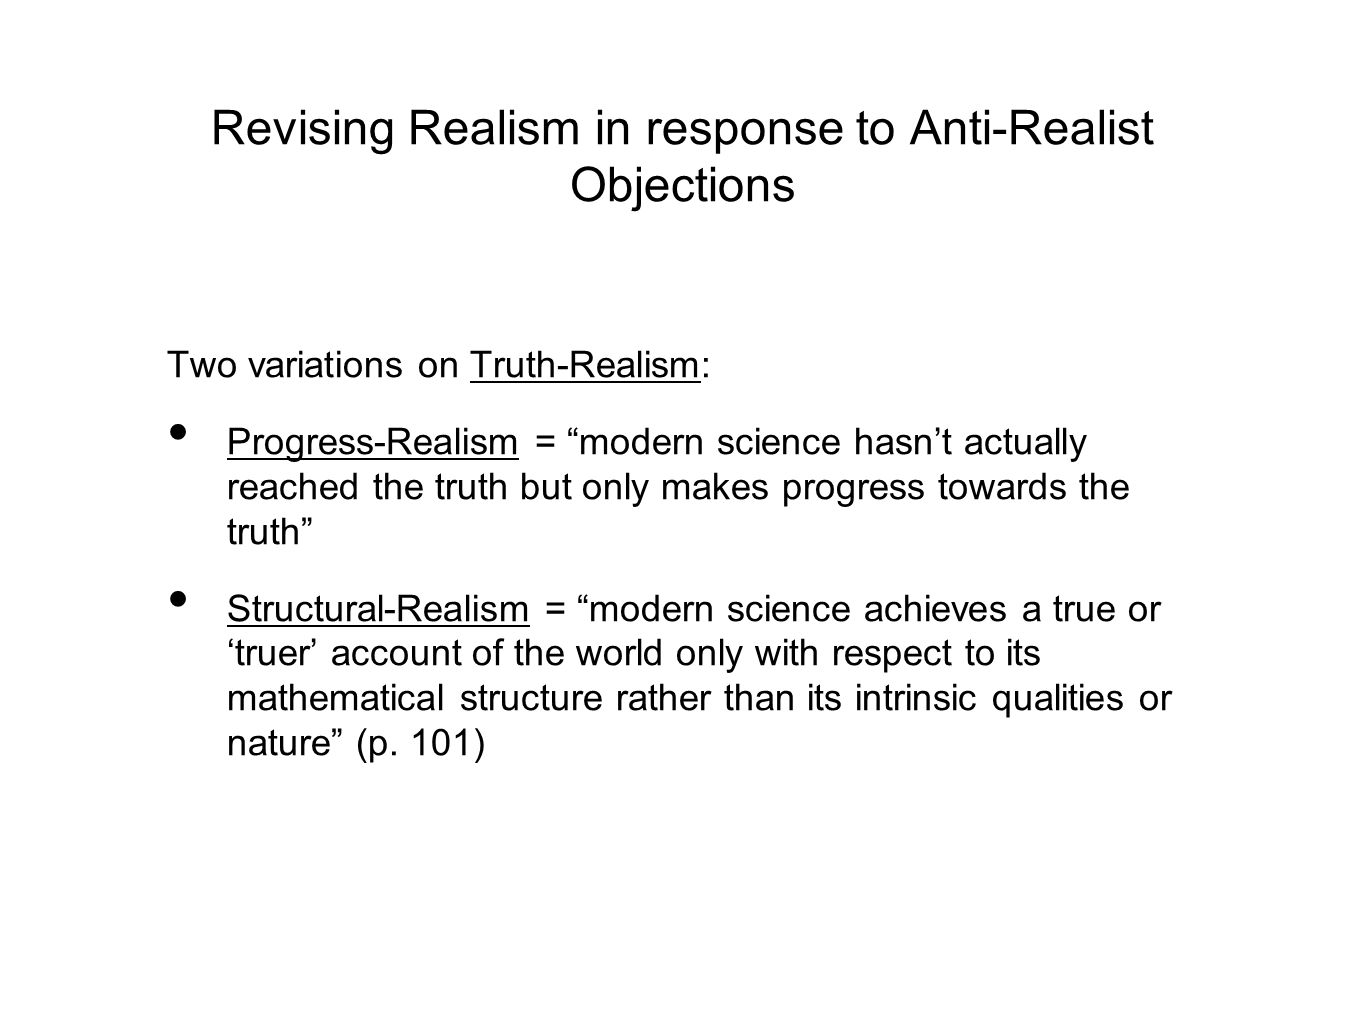 Revising Realism in response to Anti-Realist Objections Two variations on Truth-Realism: Progress-Realism = modern science hasn't actually reached the truth but only makes progress towards the truth Structural-Realism = modern science achieves a true or 'truer' account of the world only with respect to its mathematical structure rather than its intrinsic qualities or nature (p.